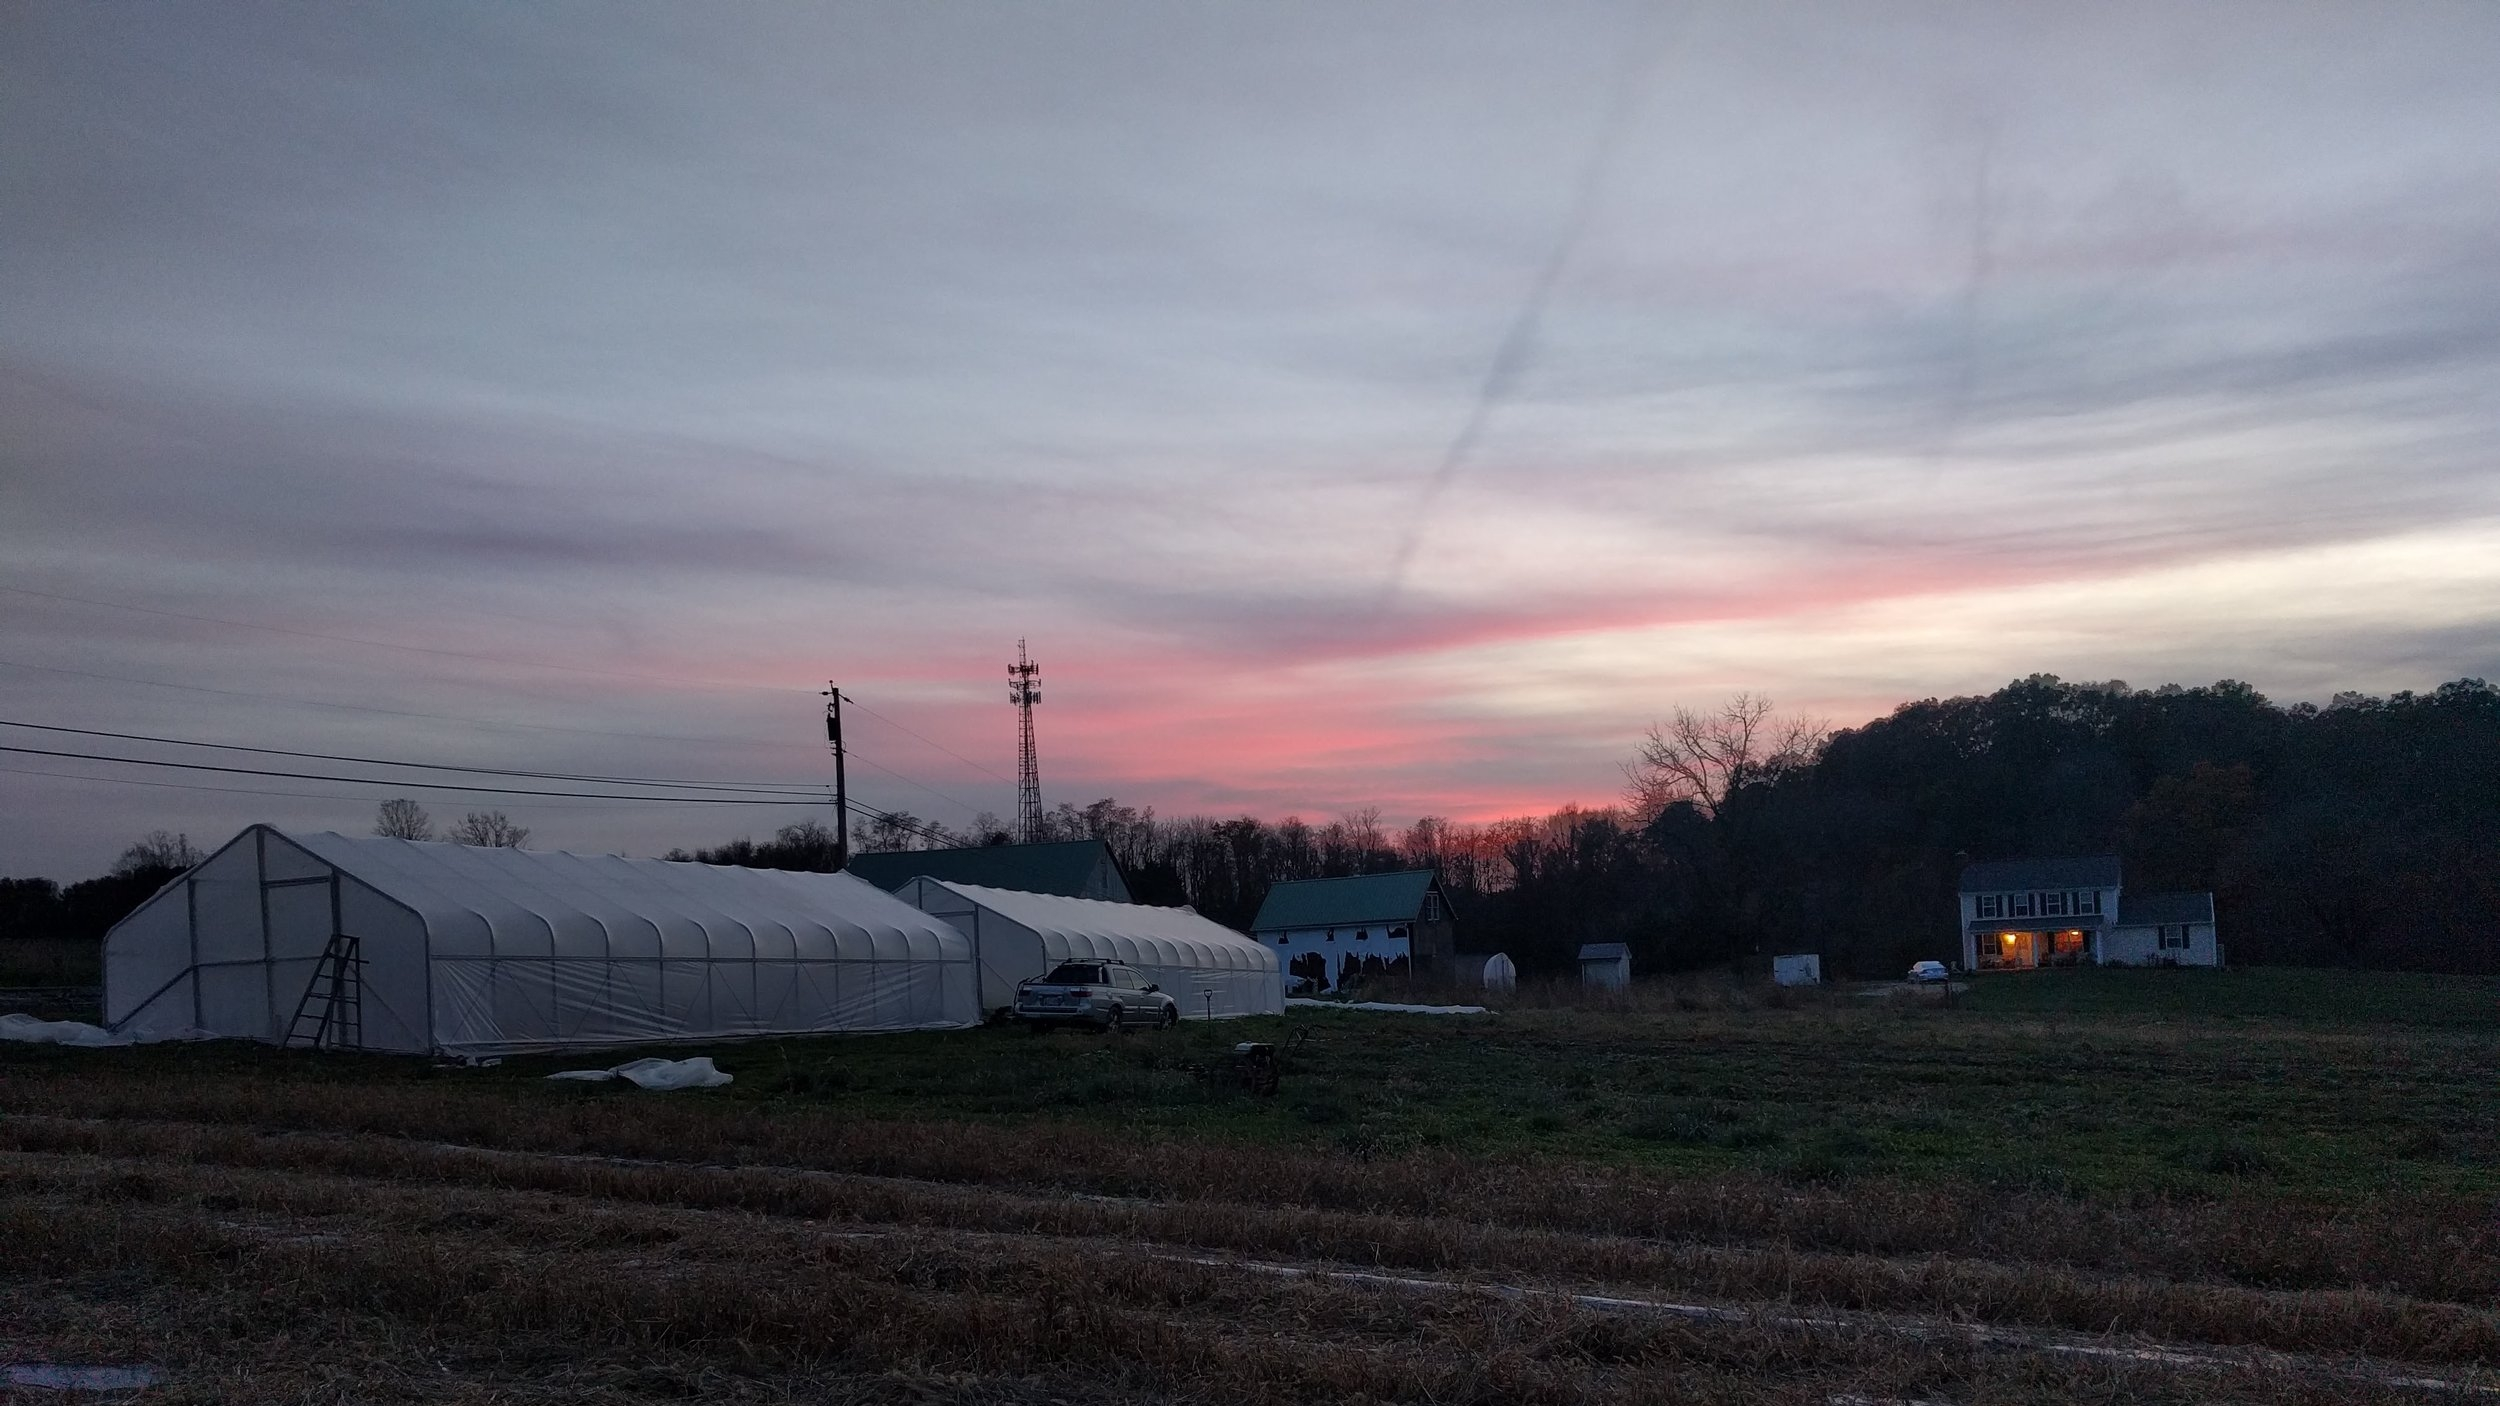 The farm at sunset, an increasing early sight.